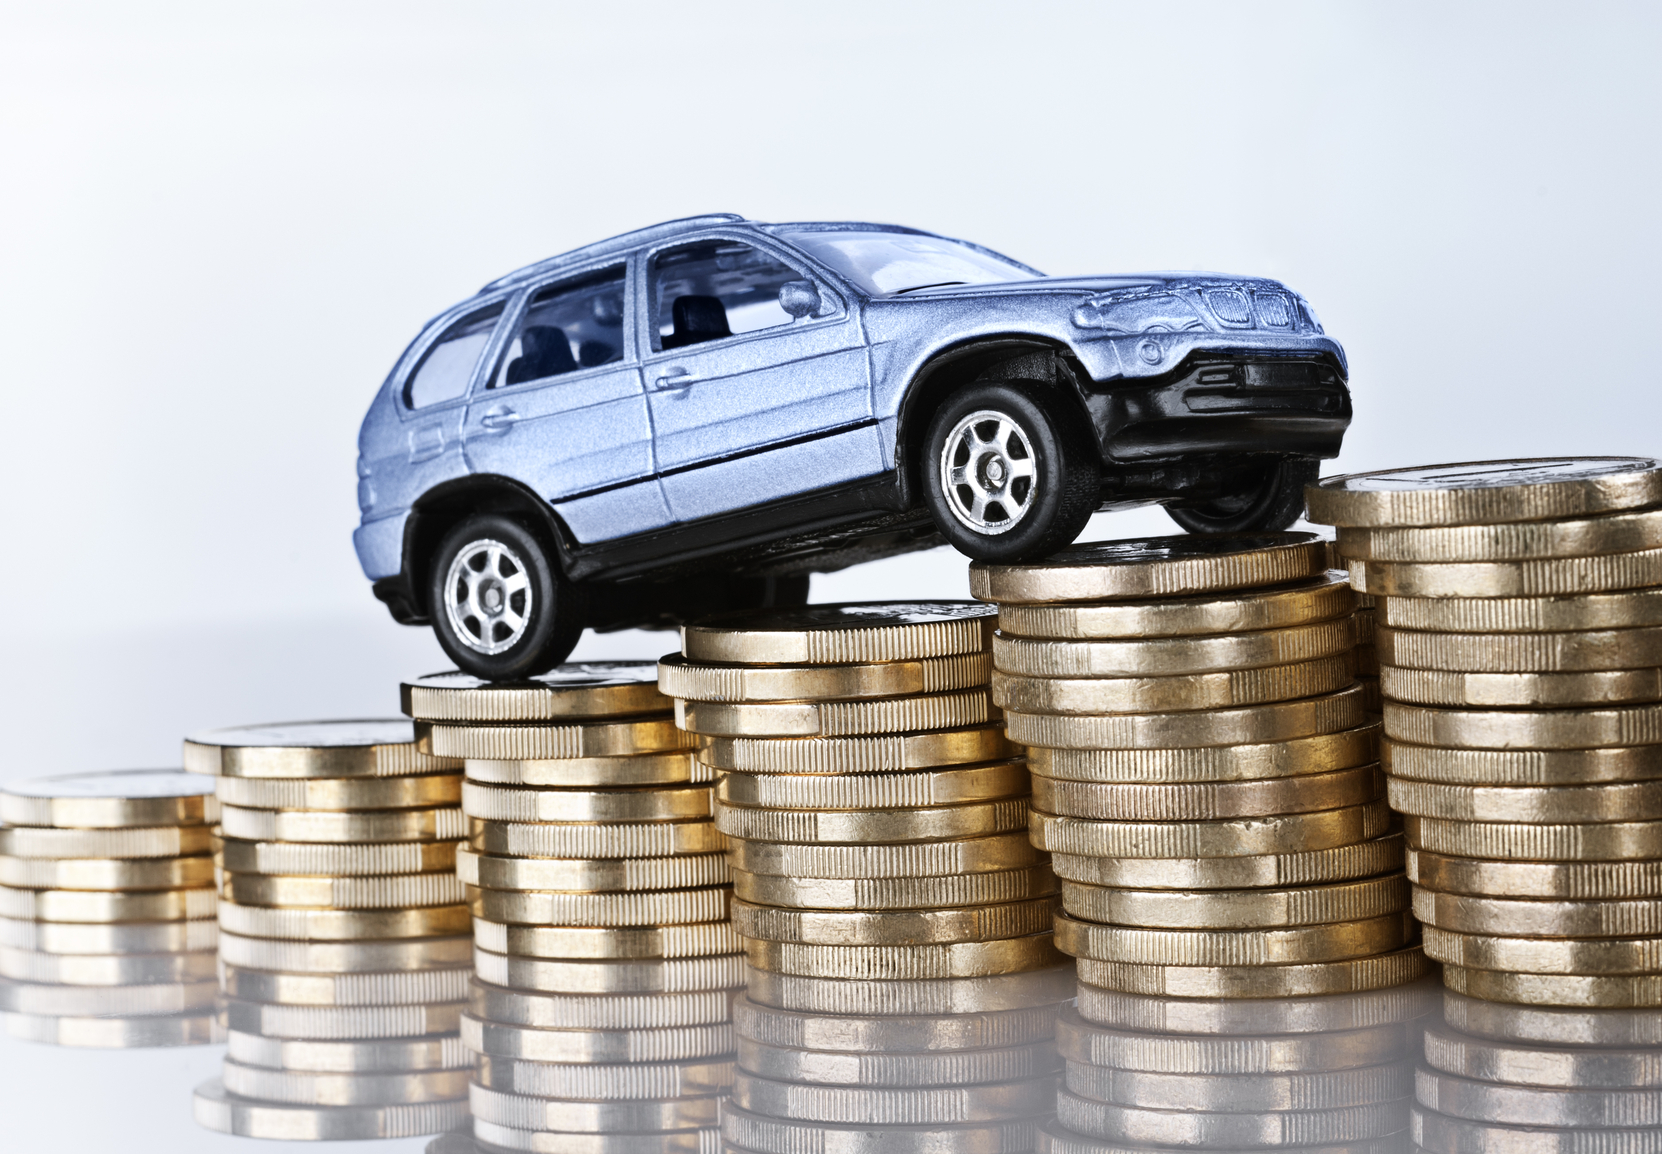 """Frankfurt, Hessen, Germany - April 04, 2012: Car drives up a ramp made from coins."""